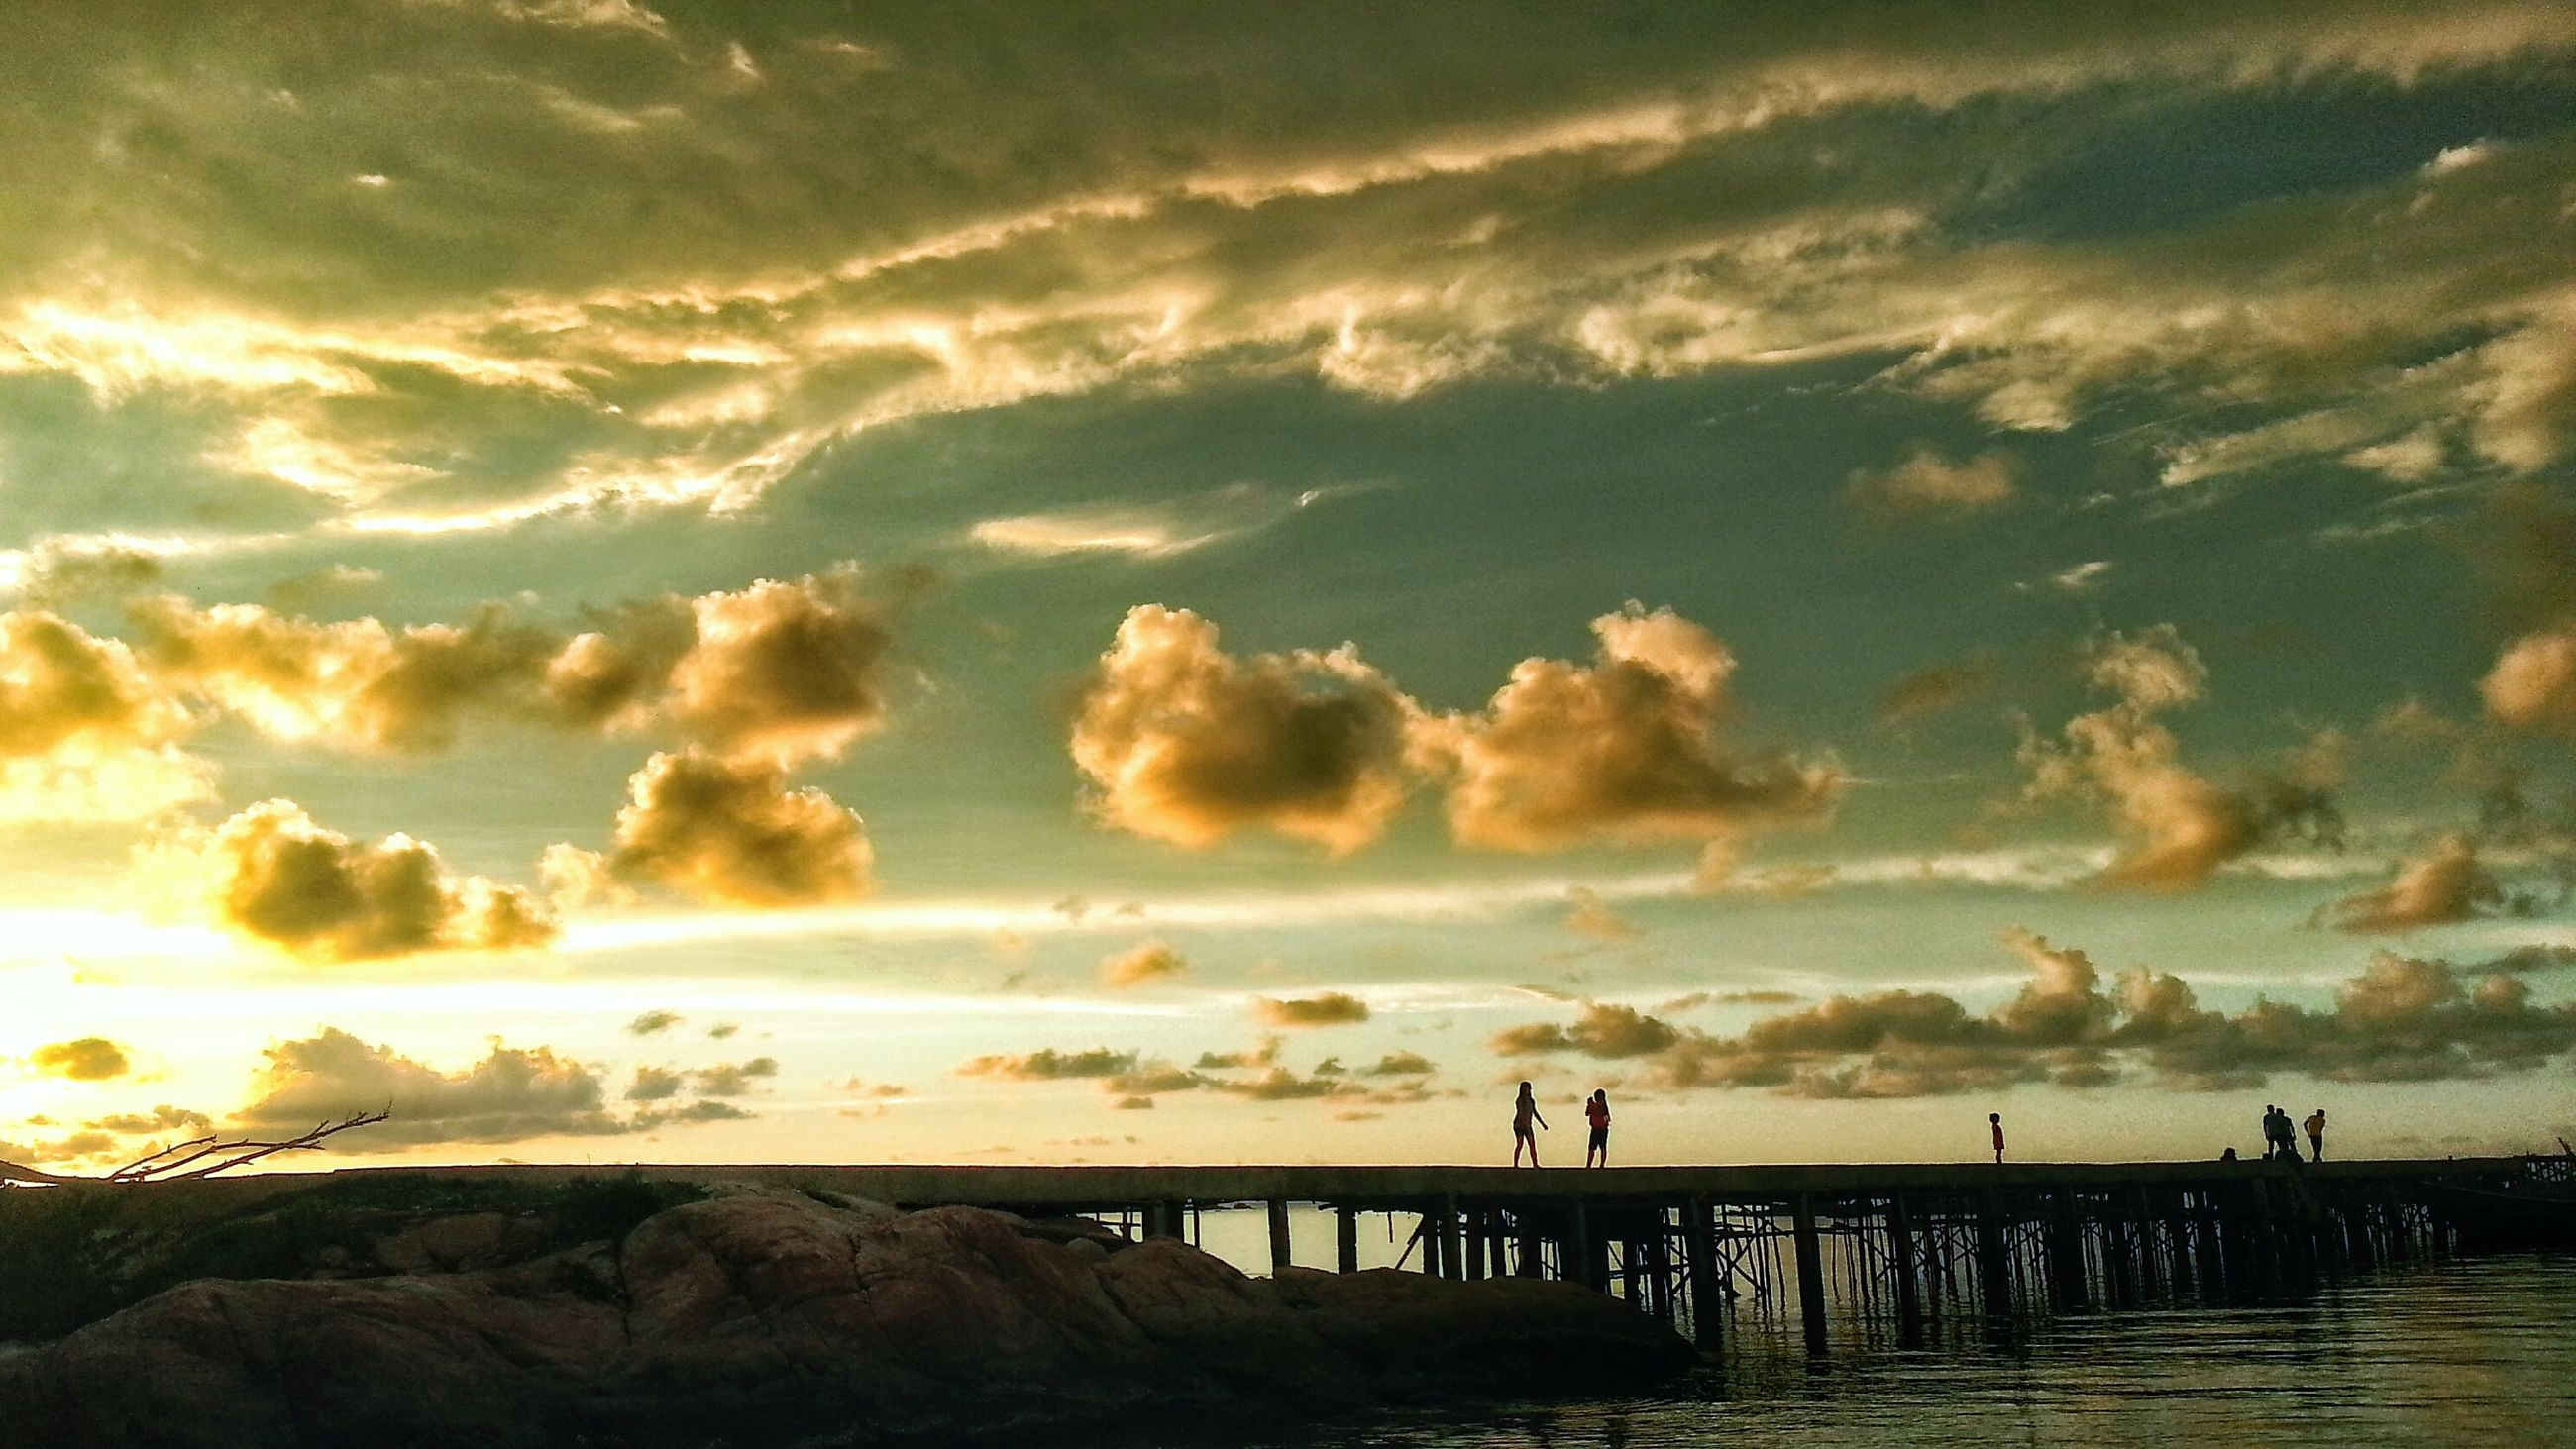 sea, water, sunset, sky, horizon over water, scenics, beach, tranquil scene, beauty in nature, tranquility, cloud - sky, silhouette, shore, nature, idyllic, incidental people, vacations, cloud, outdoors, orange color